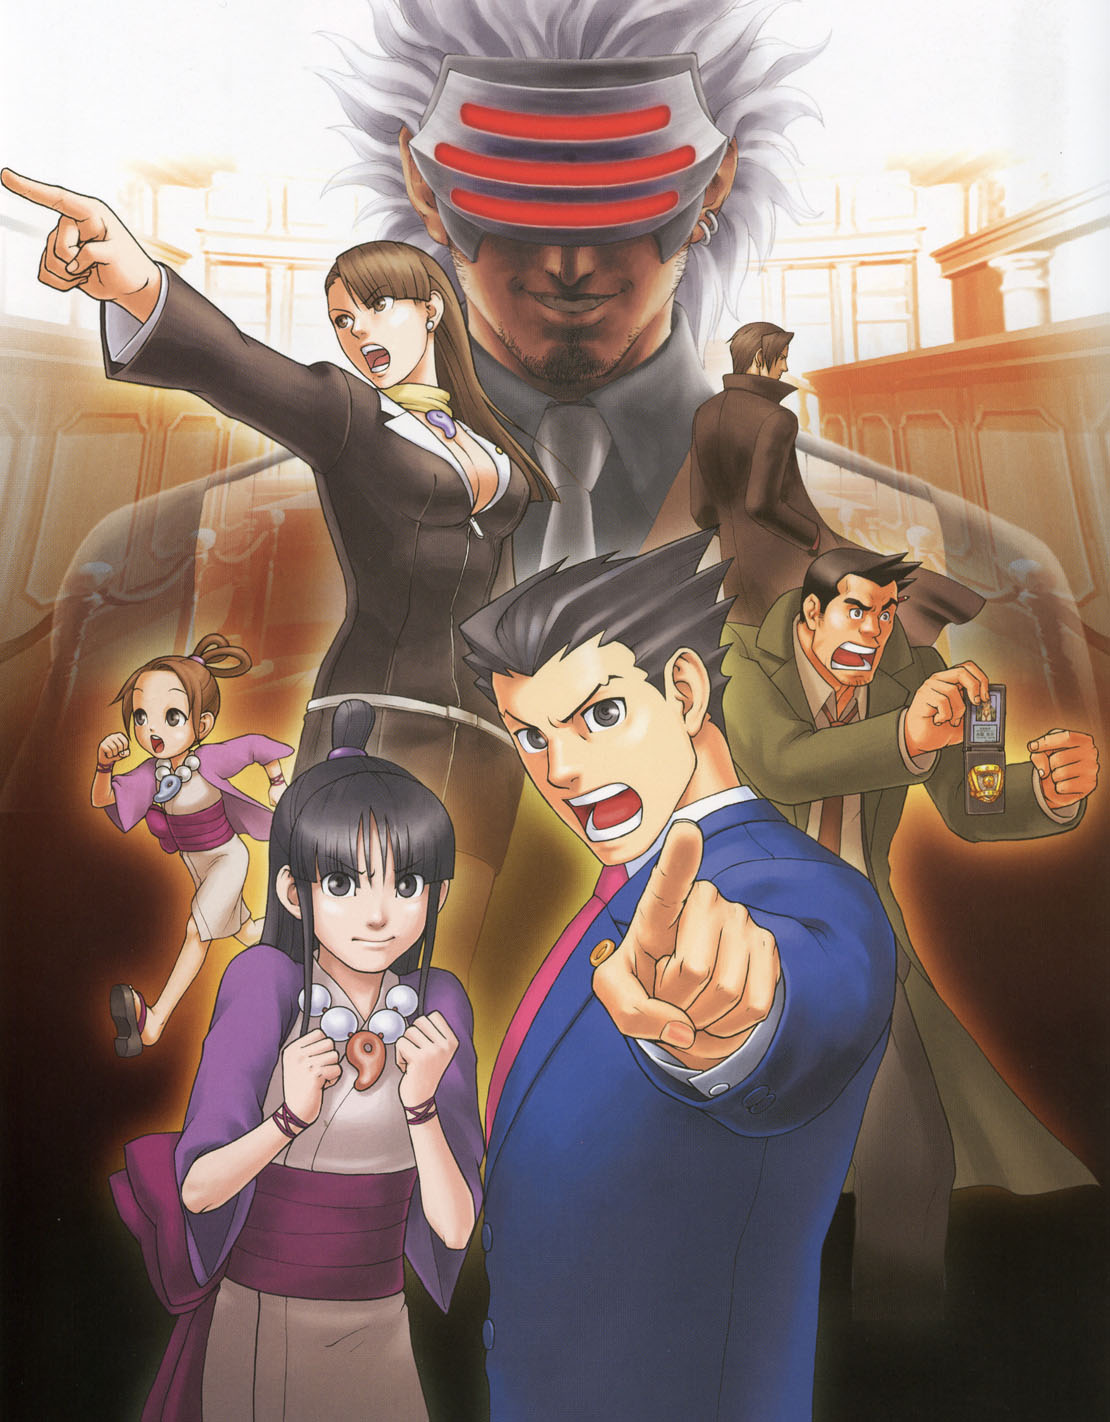 Phoenix Wright Ace Attorney Trials And Tribulations Walkthrough Strategywiki The Video Game Walkthrough And